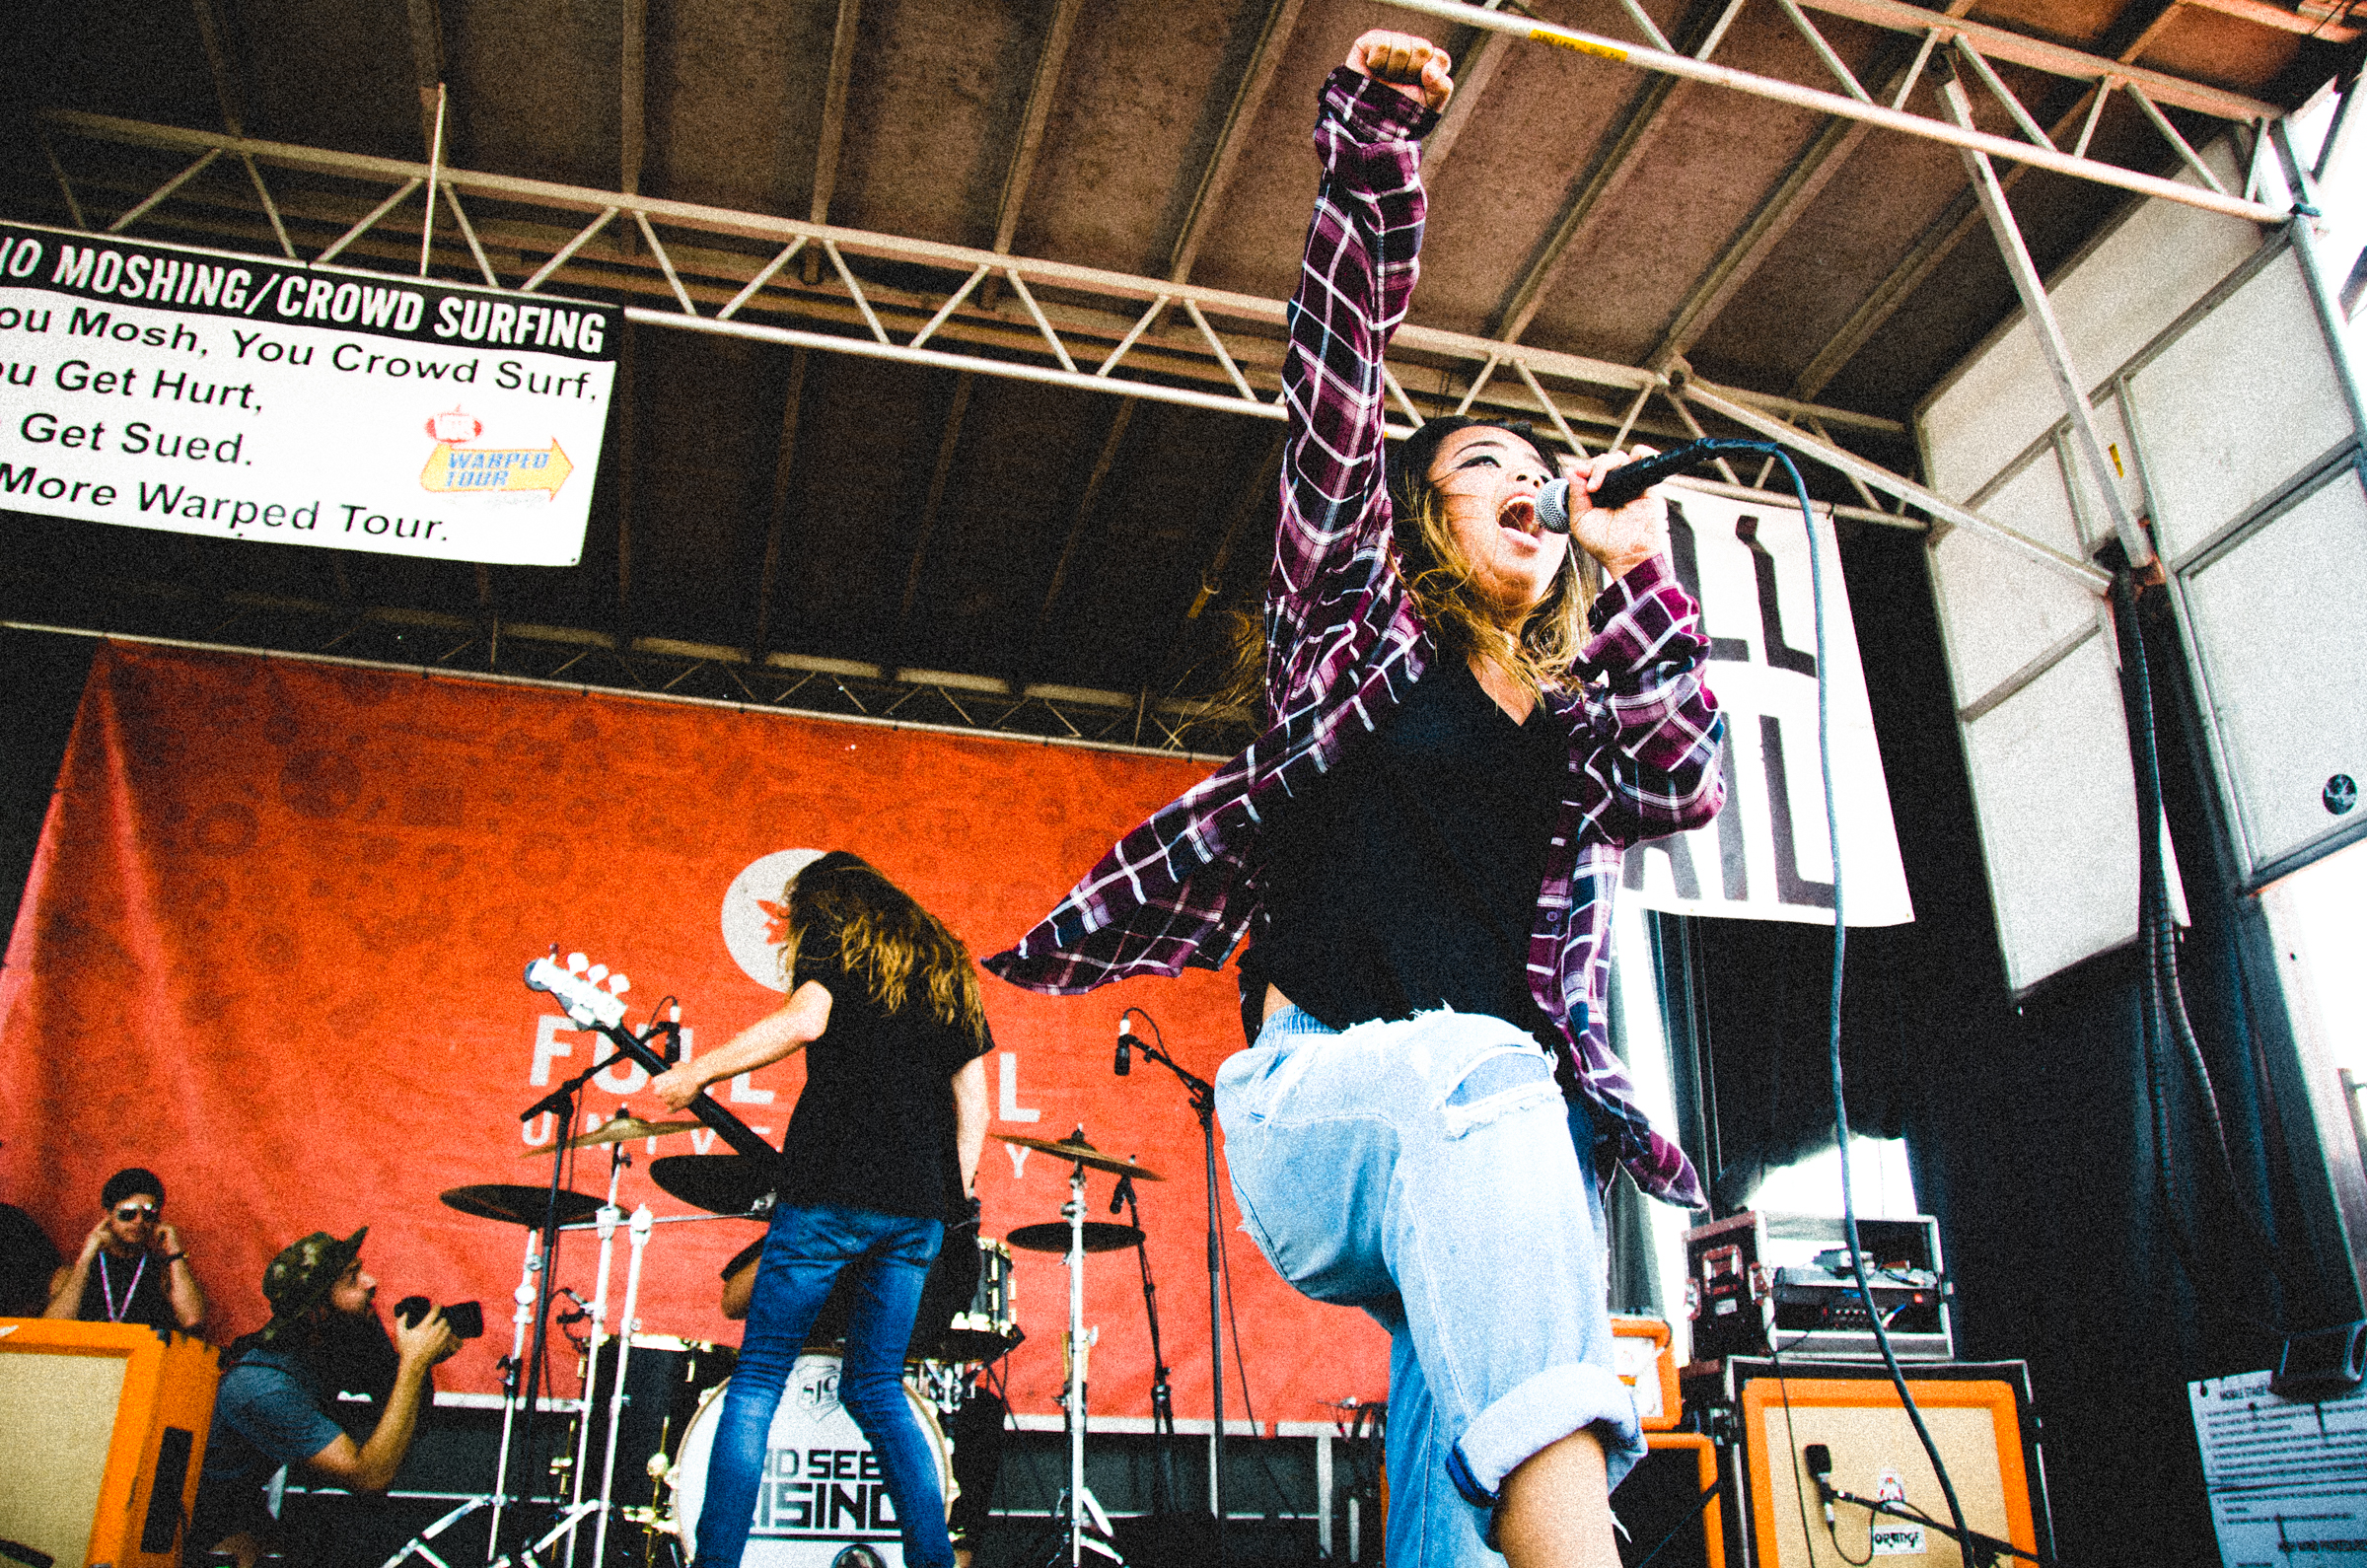 2016-07-27_Warped_Tour-007.jpg